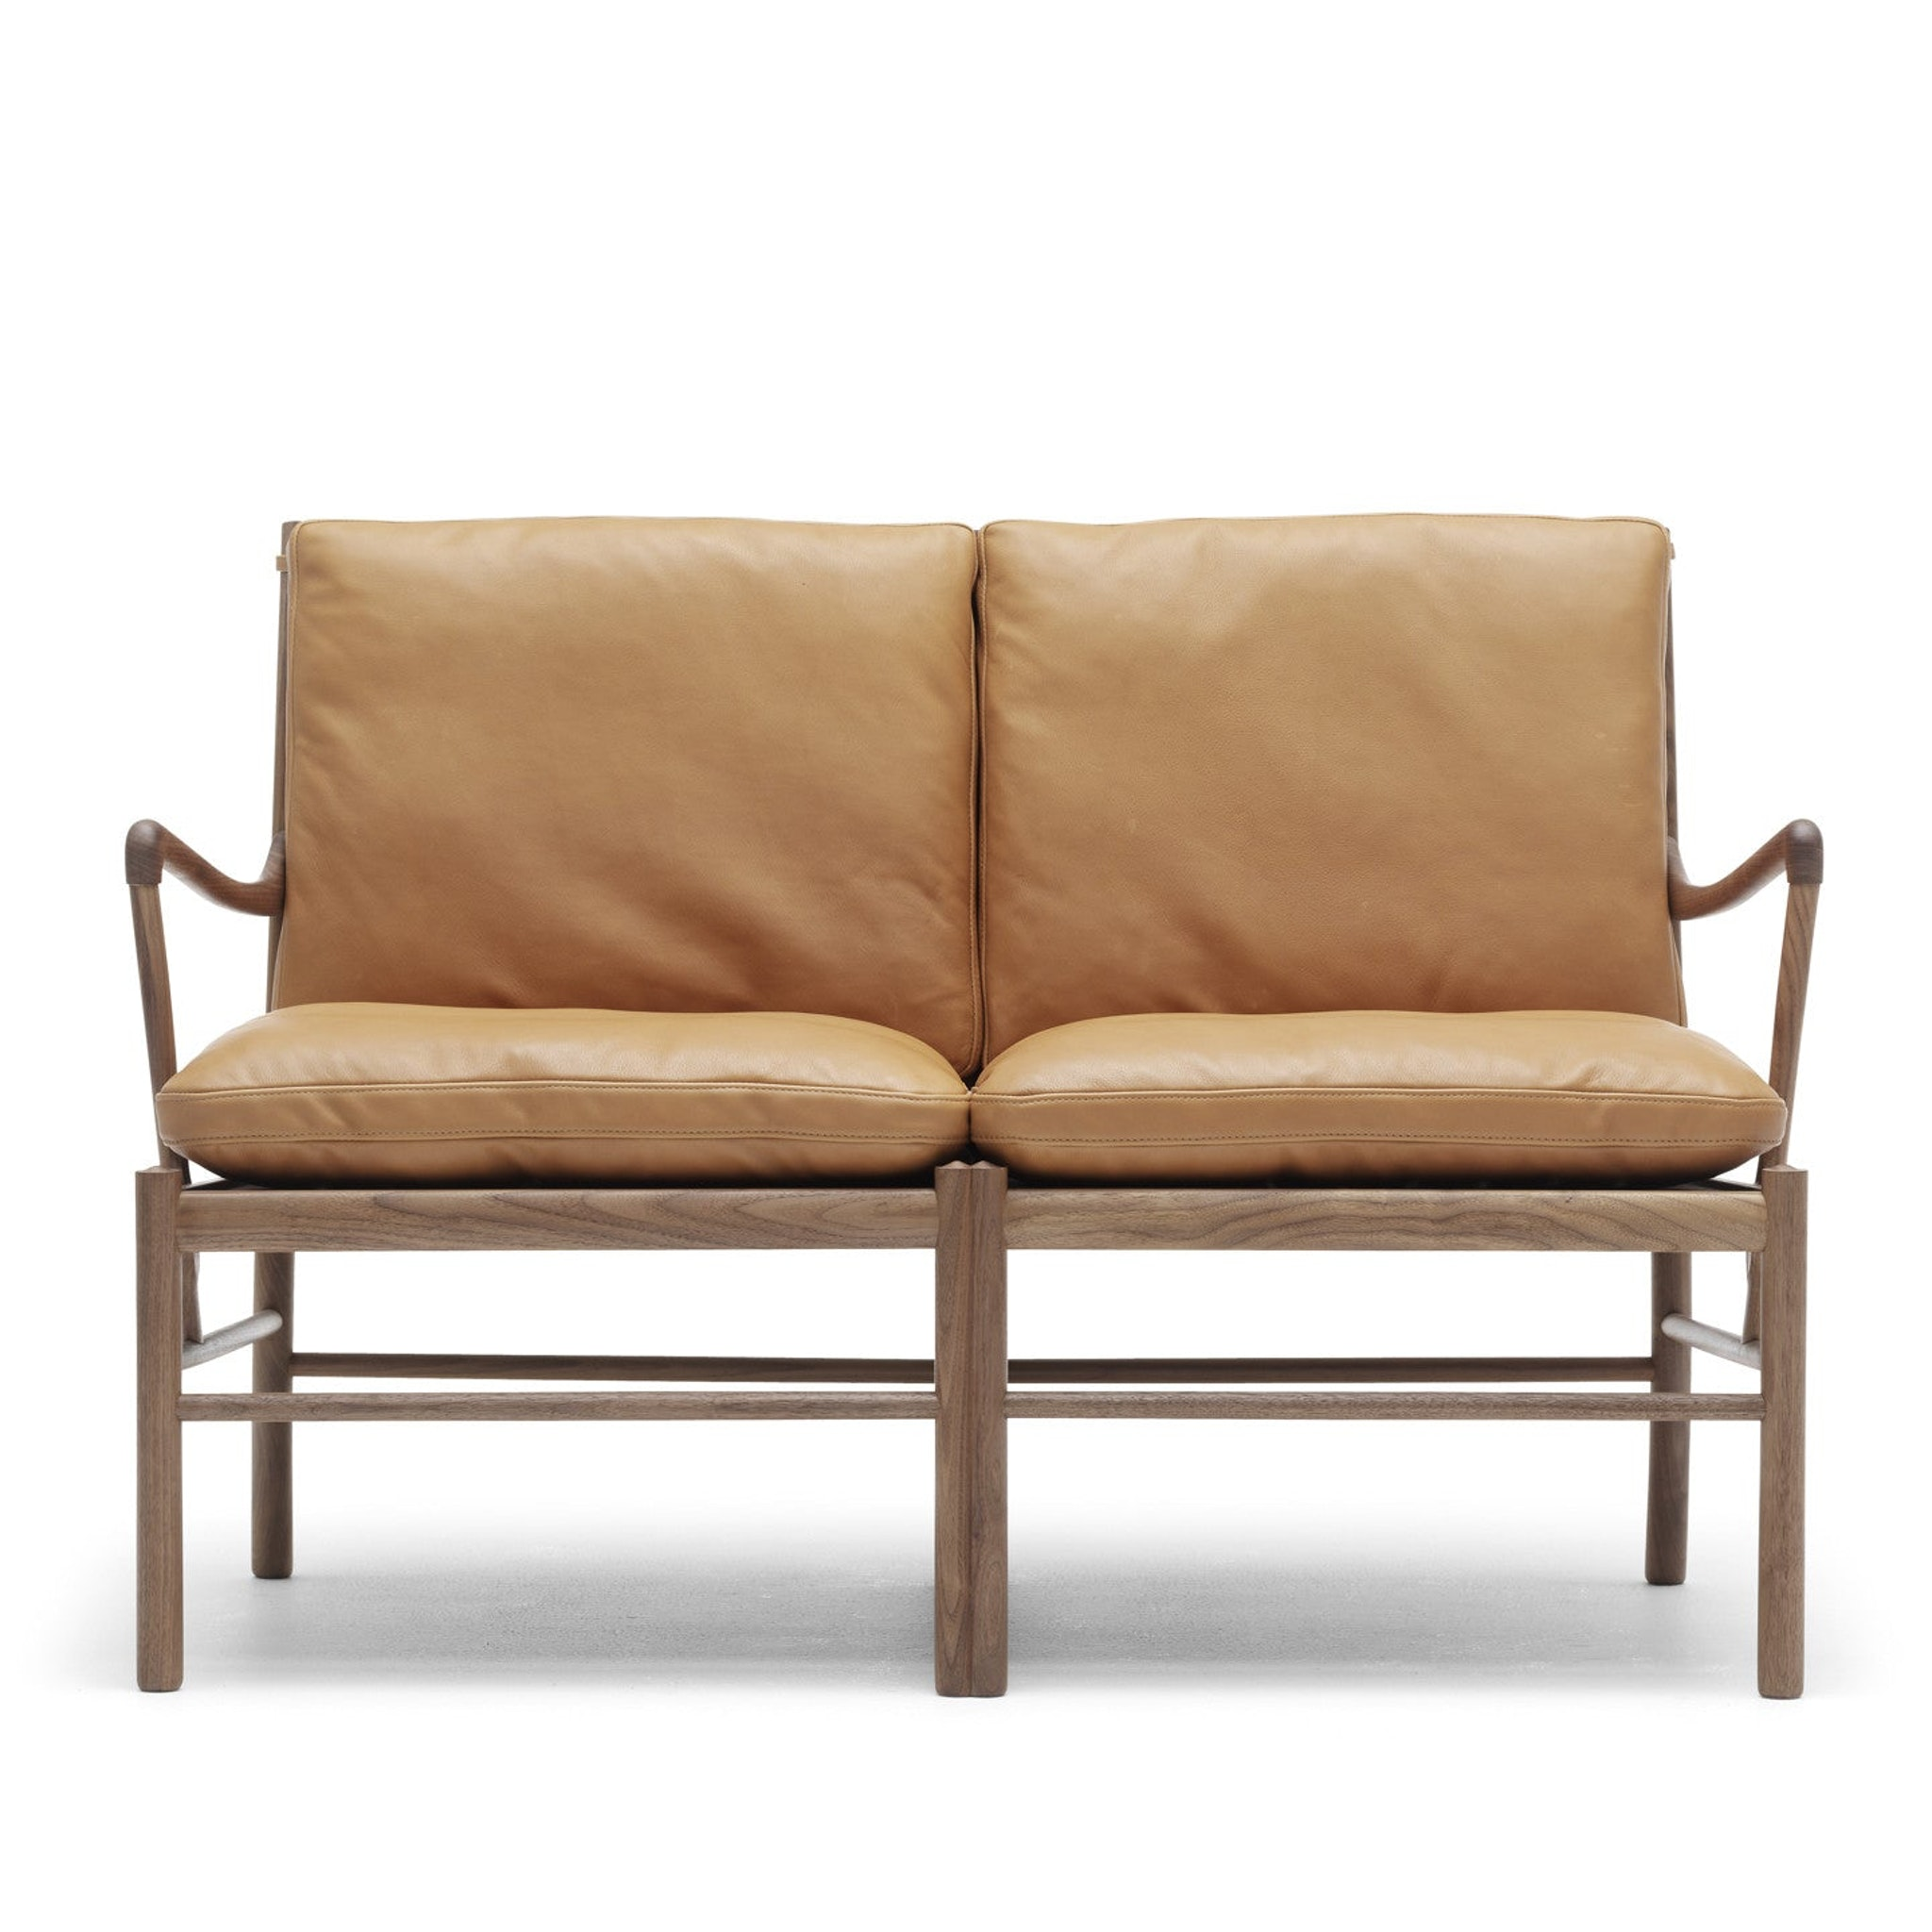 OW149-2 Colonial Sofa by Ole Wanscher